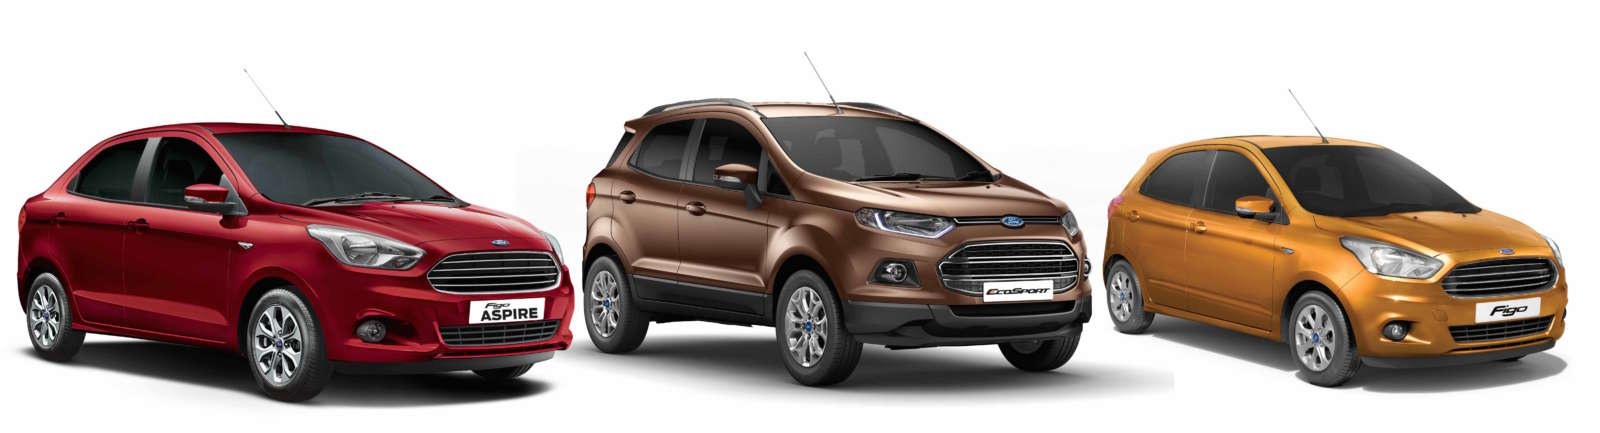 ford credit india begins retail financing introduces special interest rate  ford ecosport